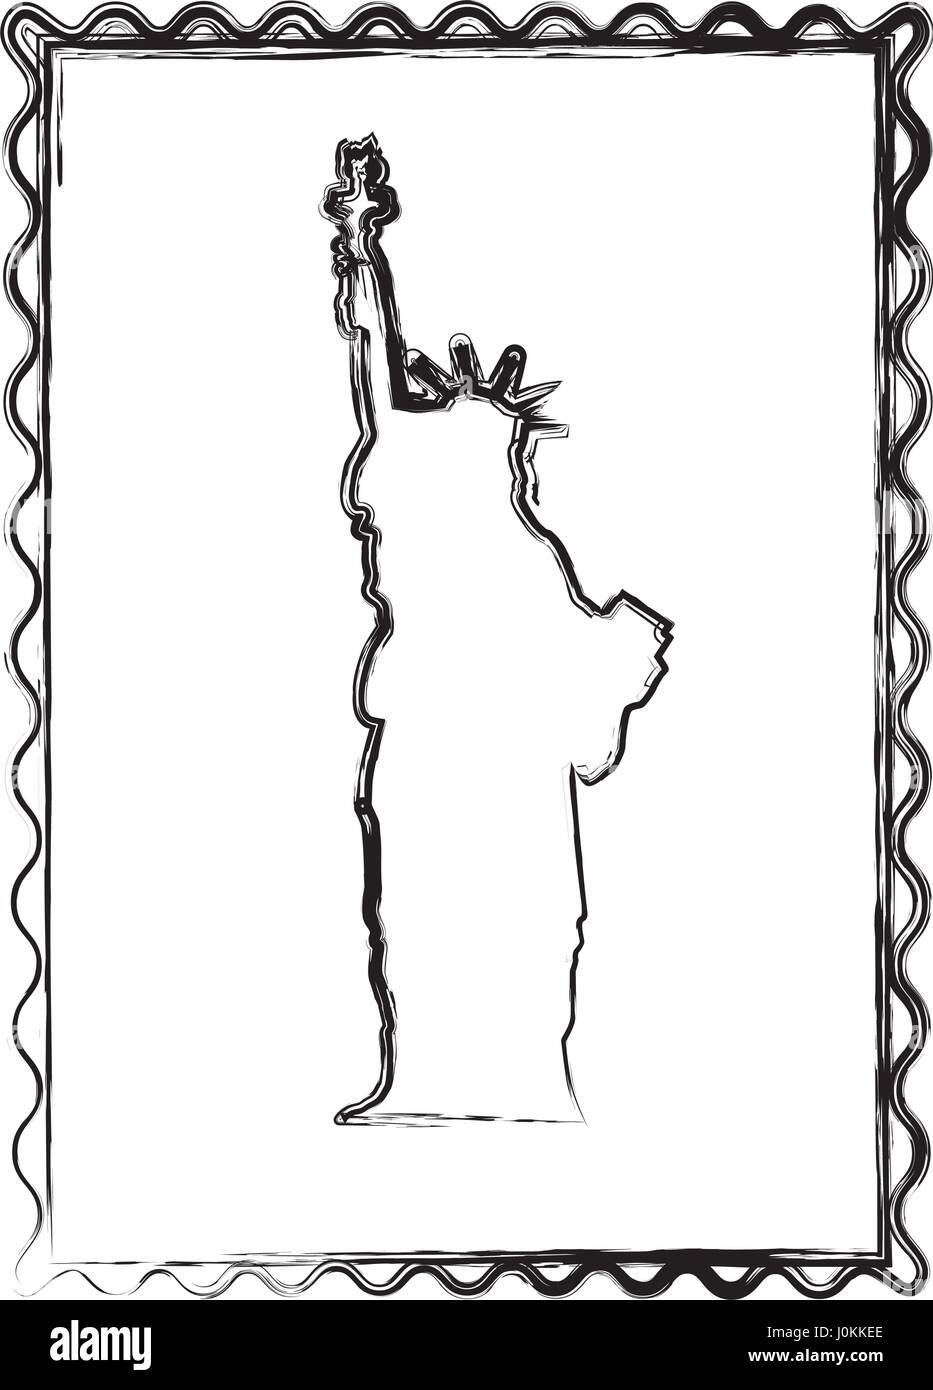 blurred silhouette frame of statue of liberty Stock Vector